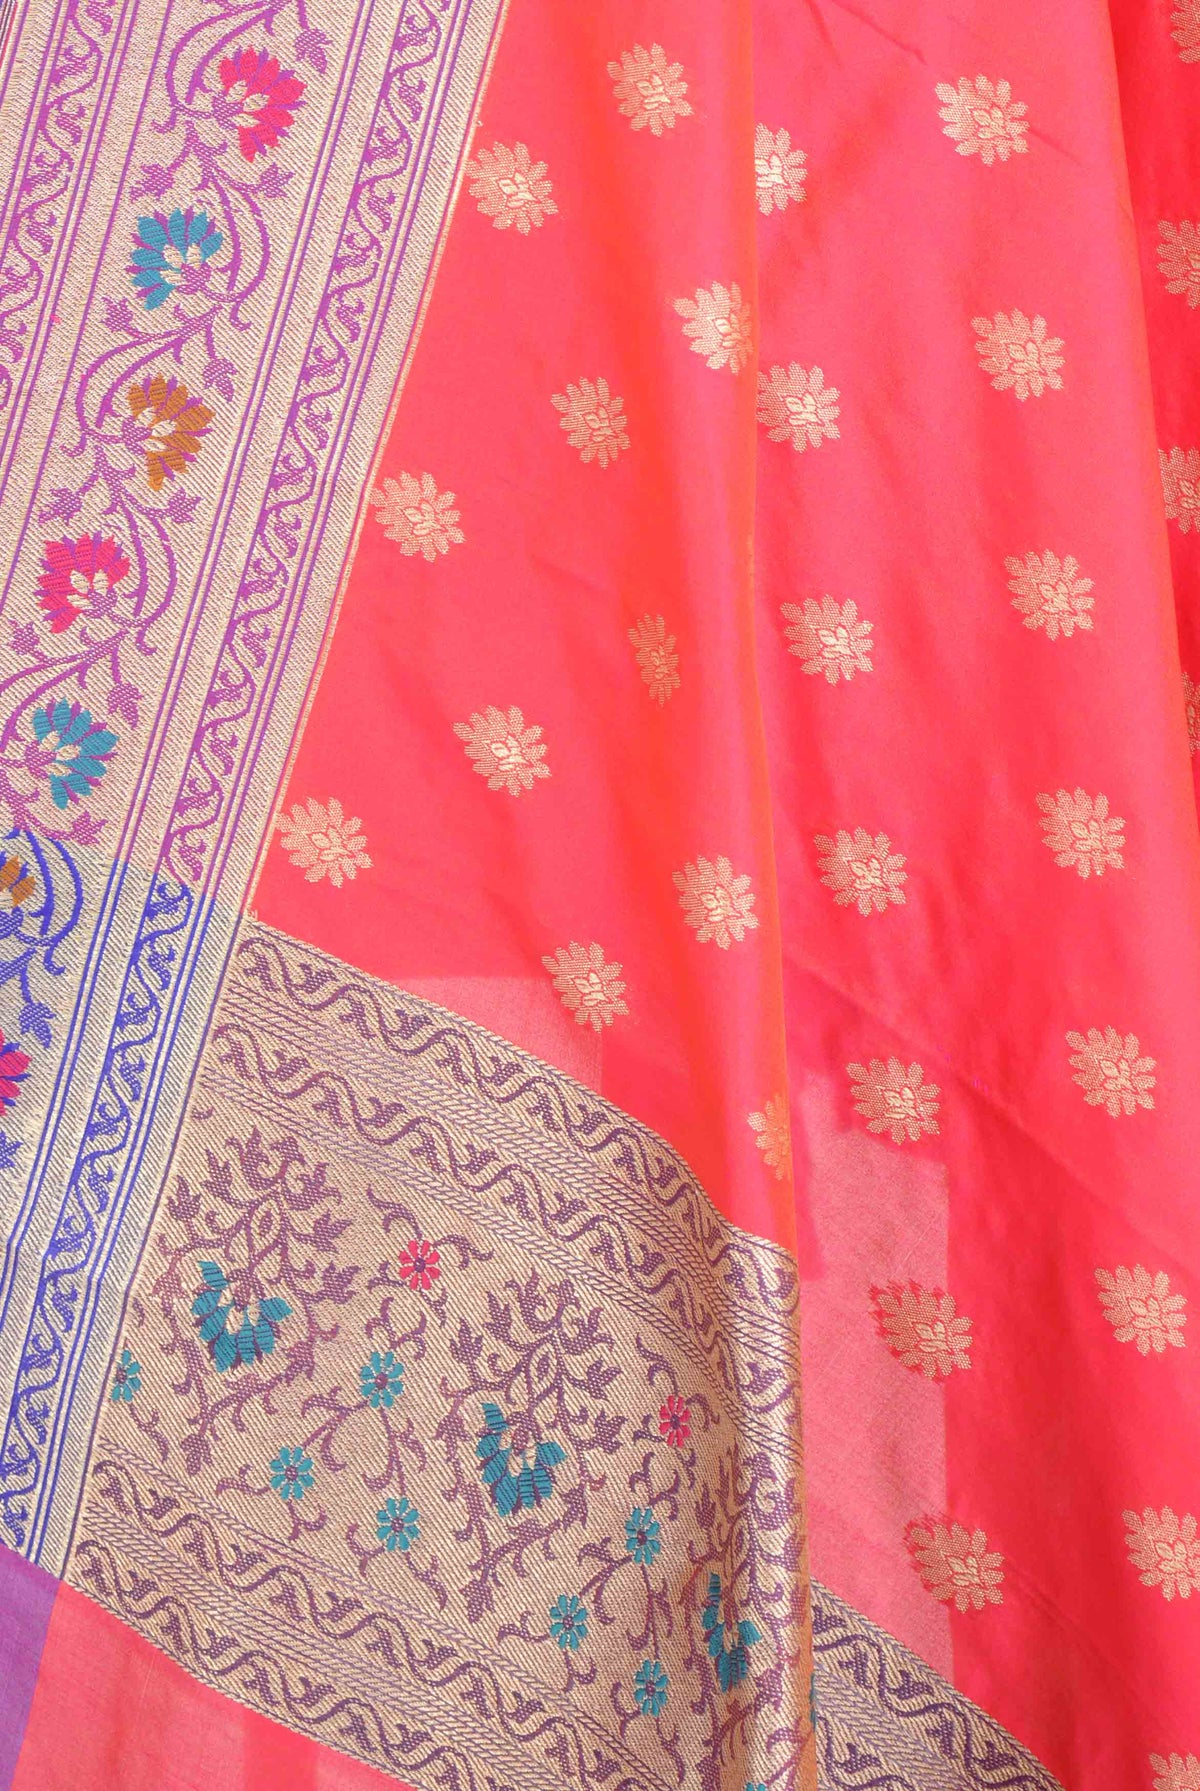 Pink Banarasi Dupatta with multi color border with leaf motif (2) Closeup